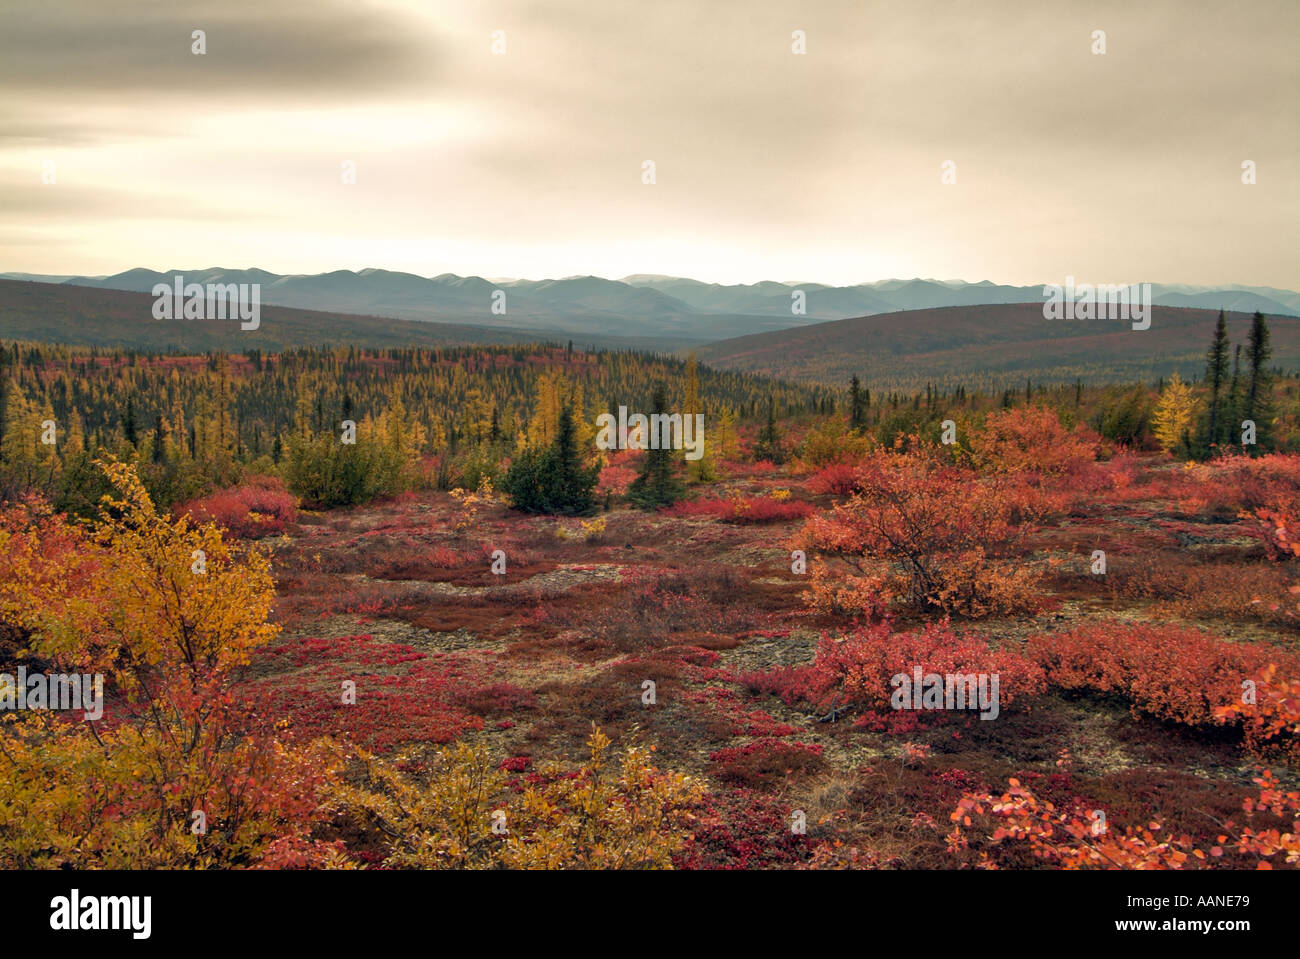 tundra-in-autumn-at-the-arctic-circle-dempster-highway-yukon-canada-AANE79.jpg